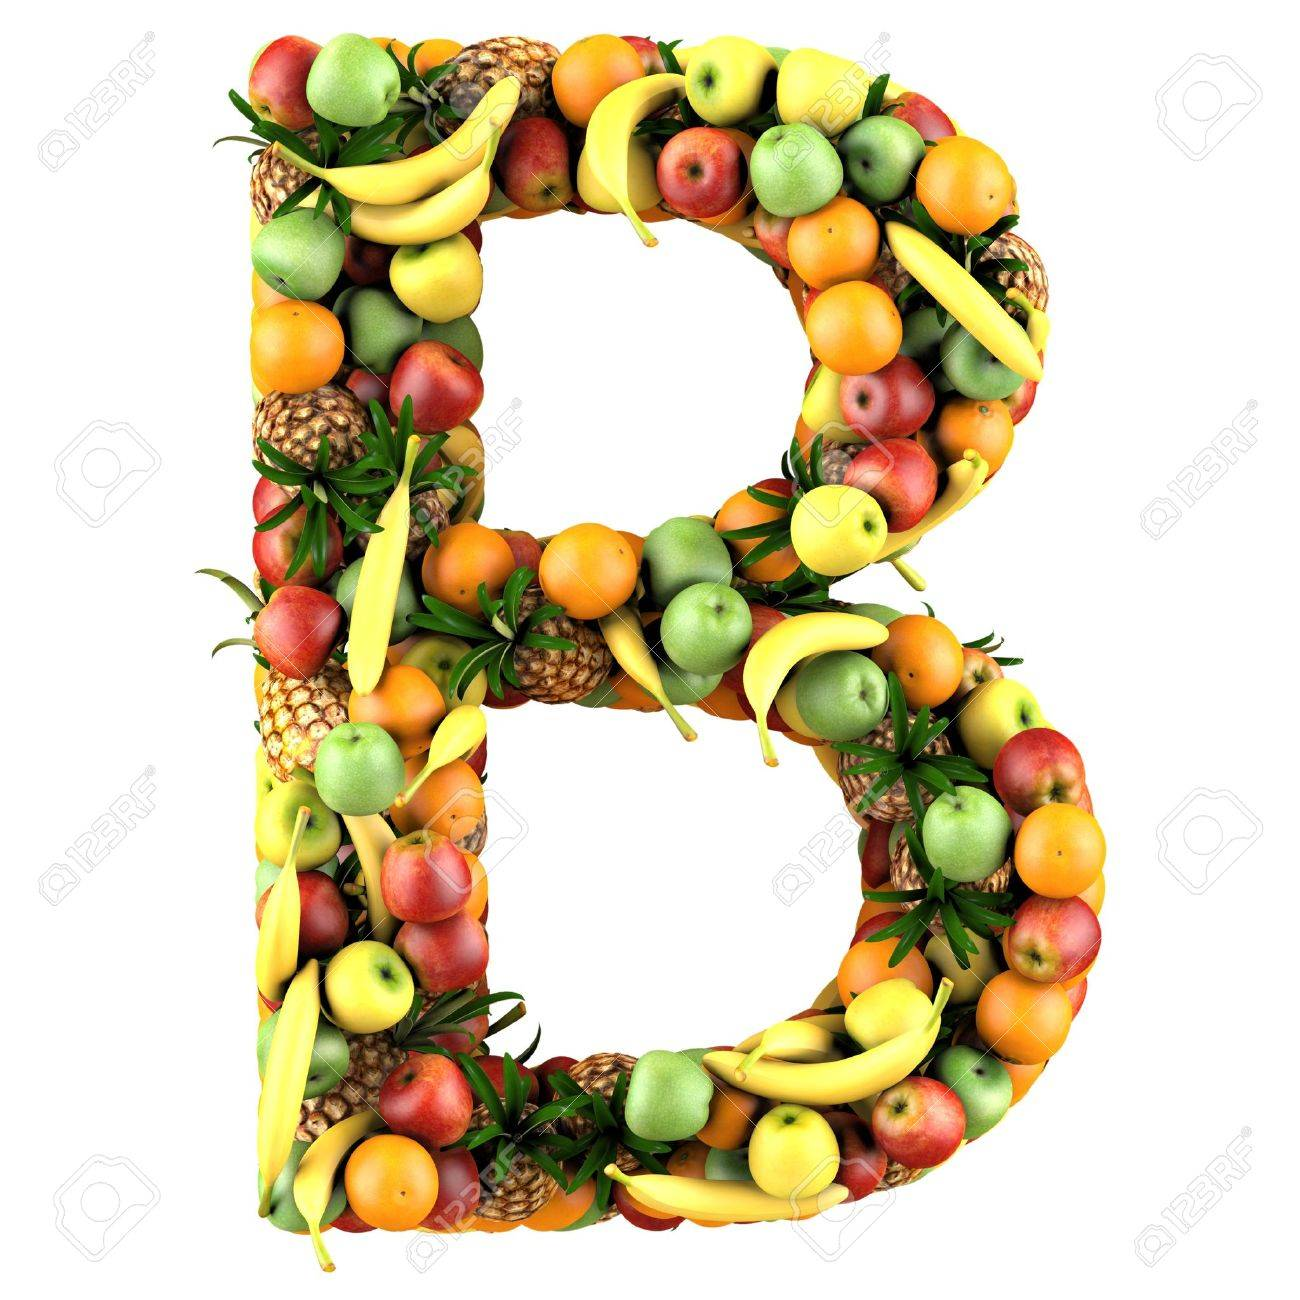 Image result for letter B fruit